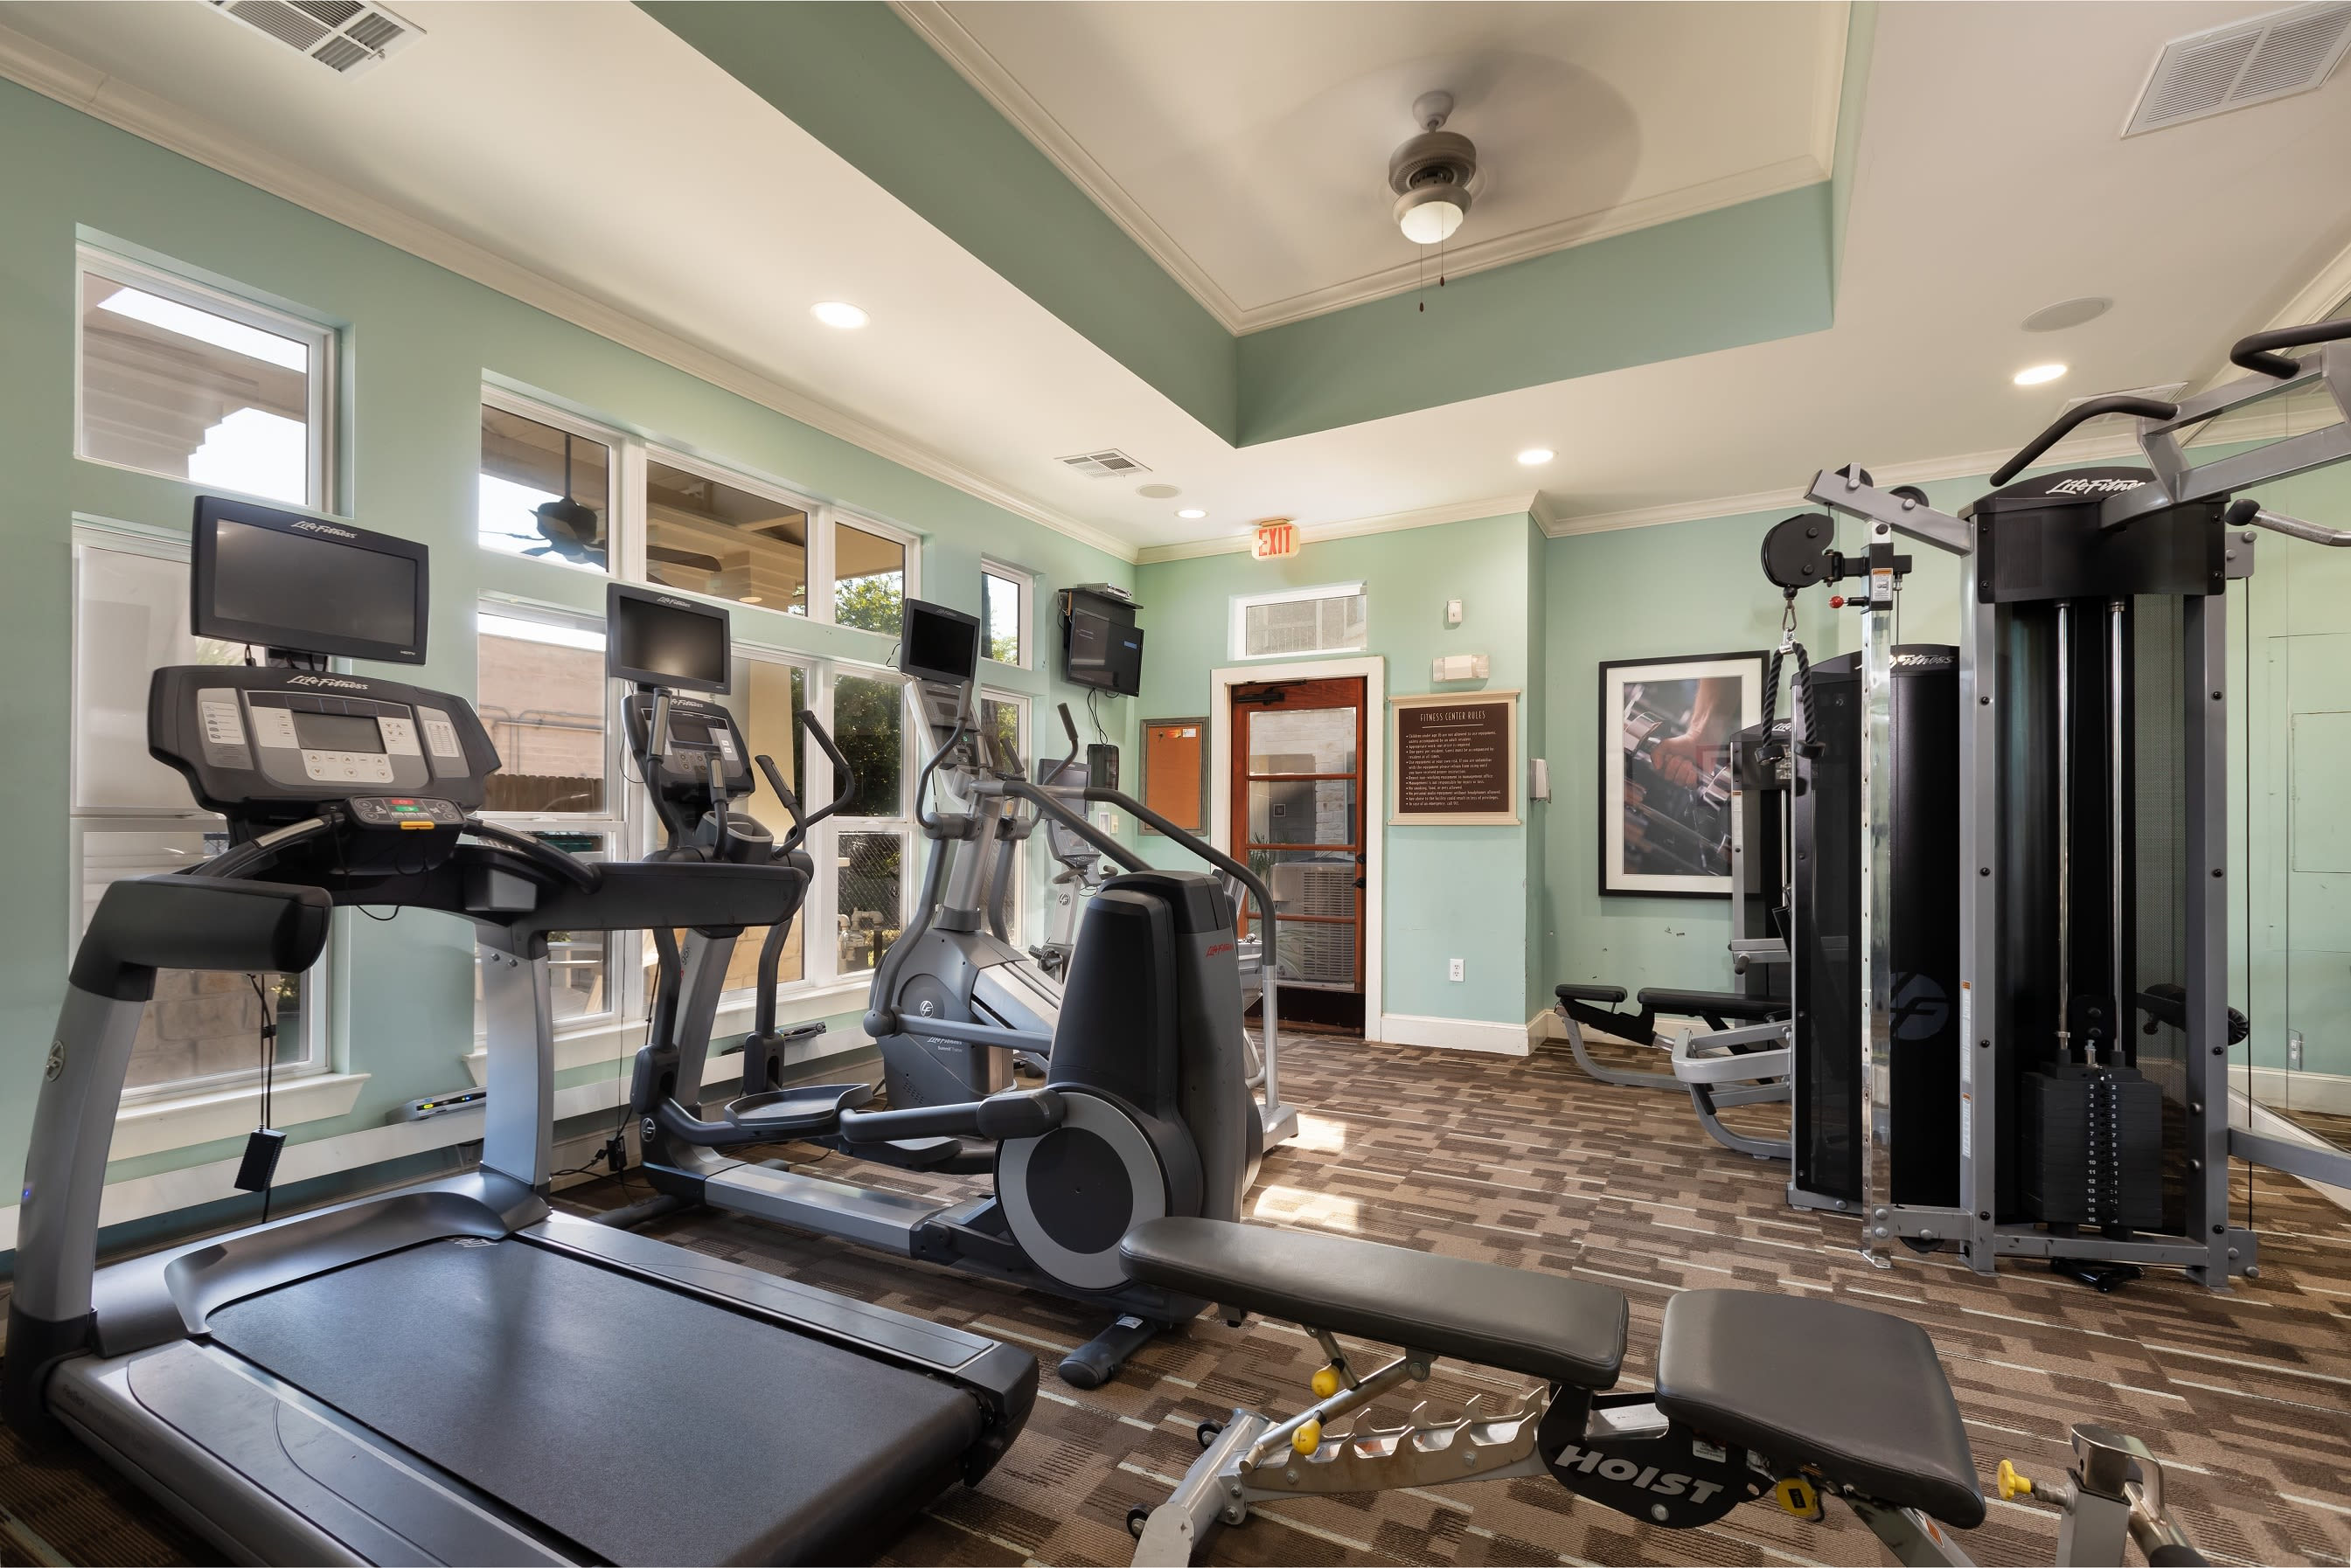 Fitness center at Lakefront Villas in Houston, Texas